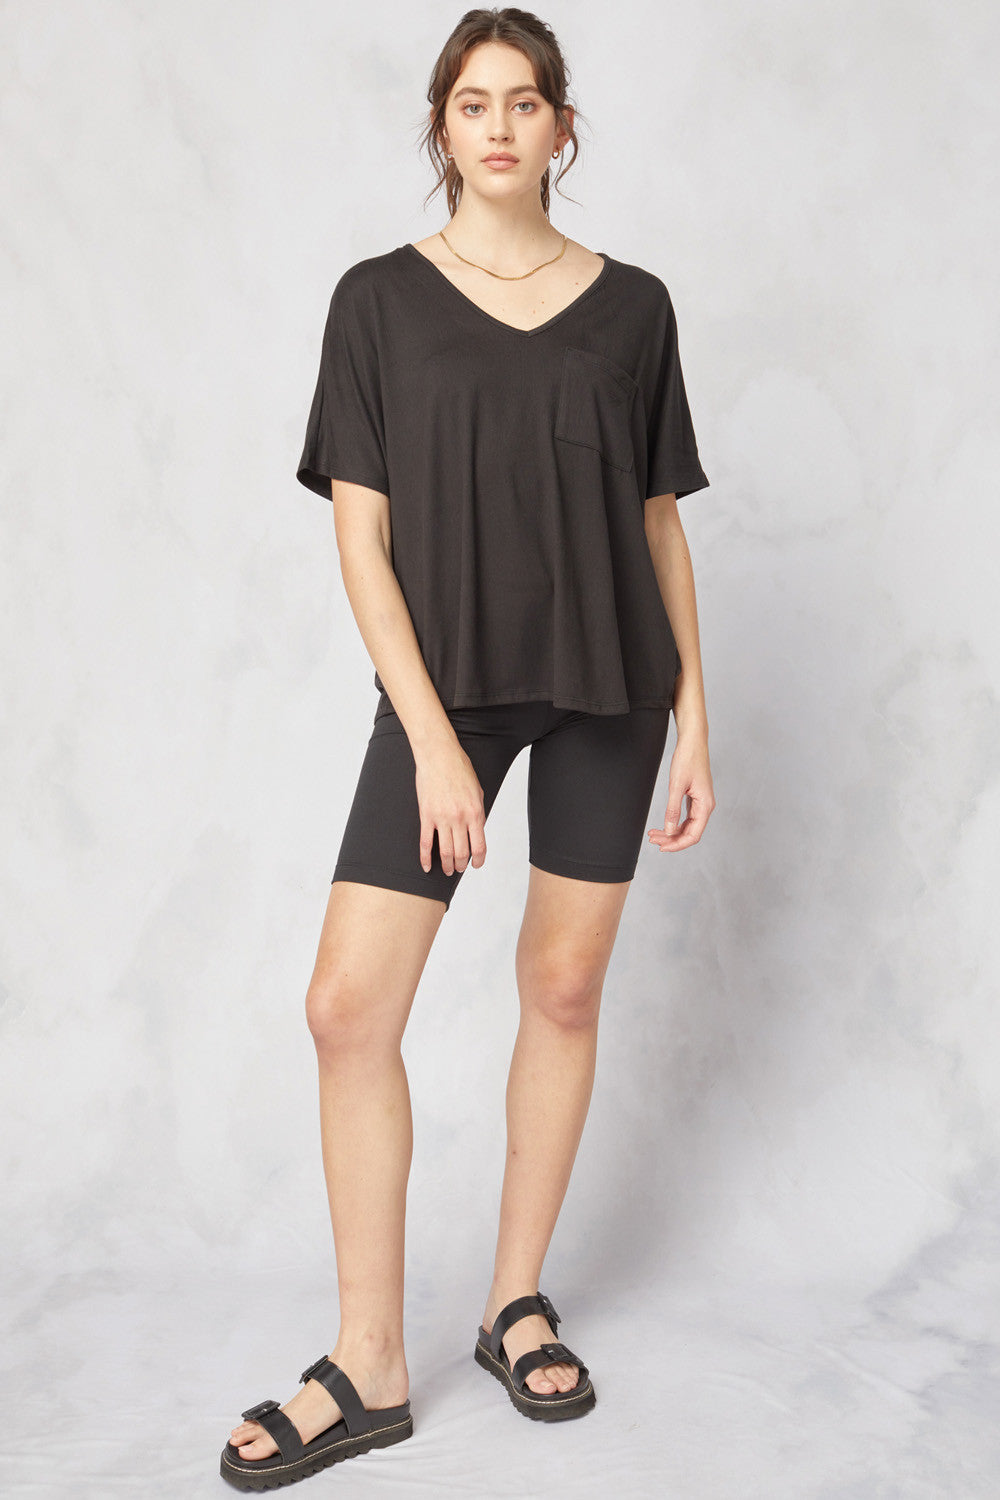 Solid v-neck short sleeve top featuring pocket at bust